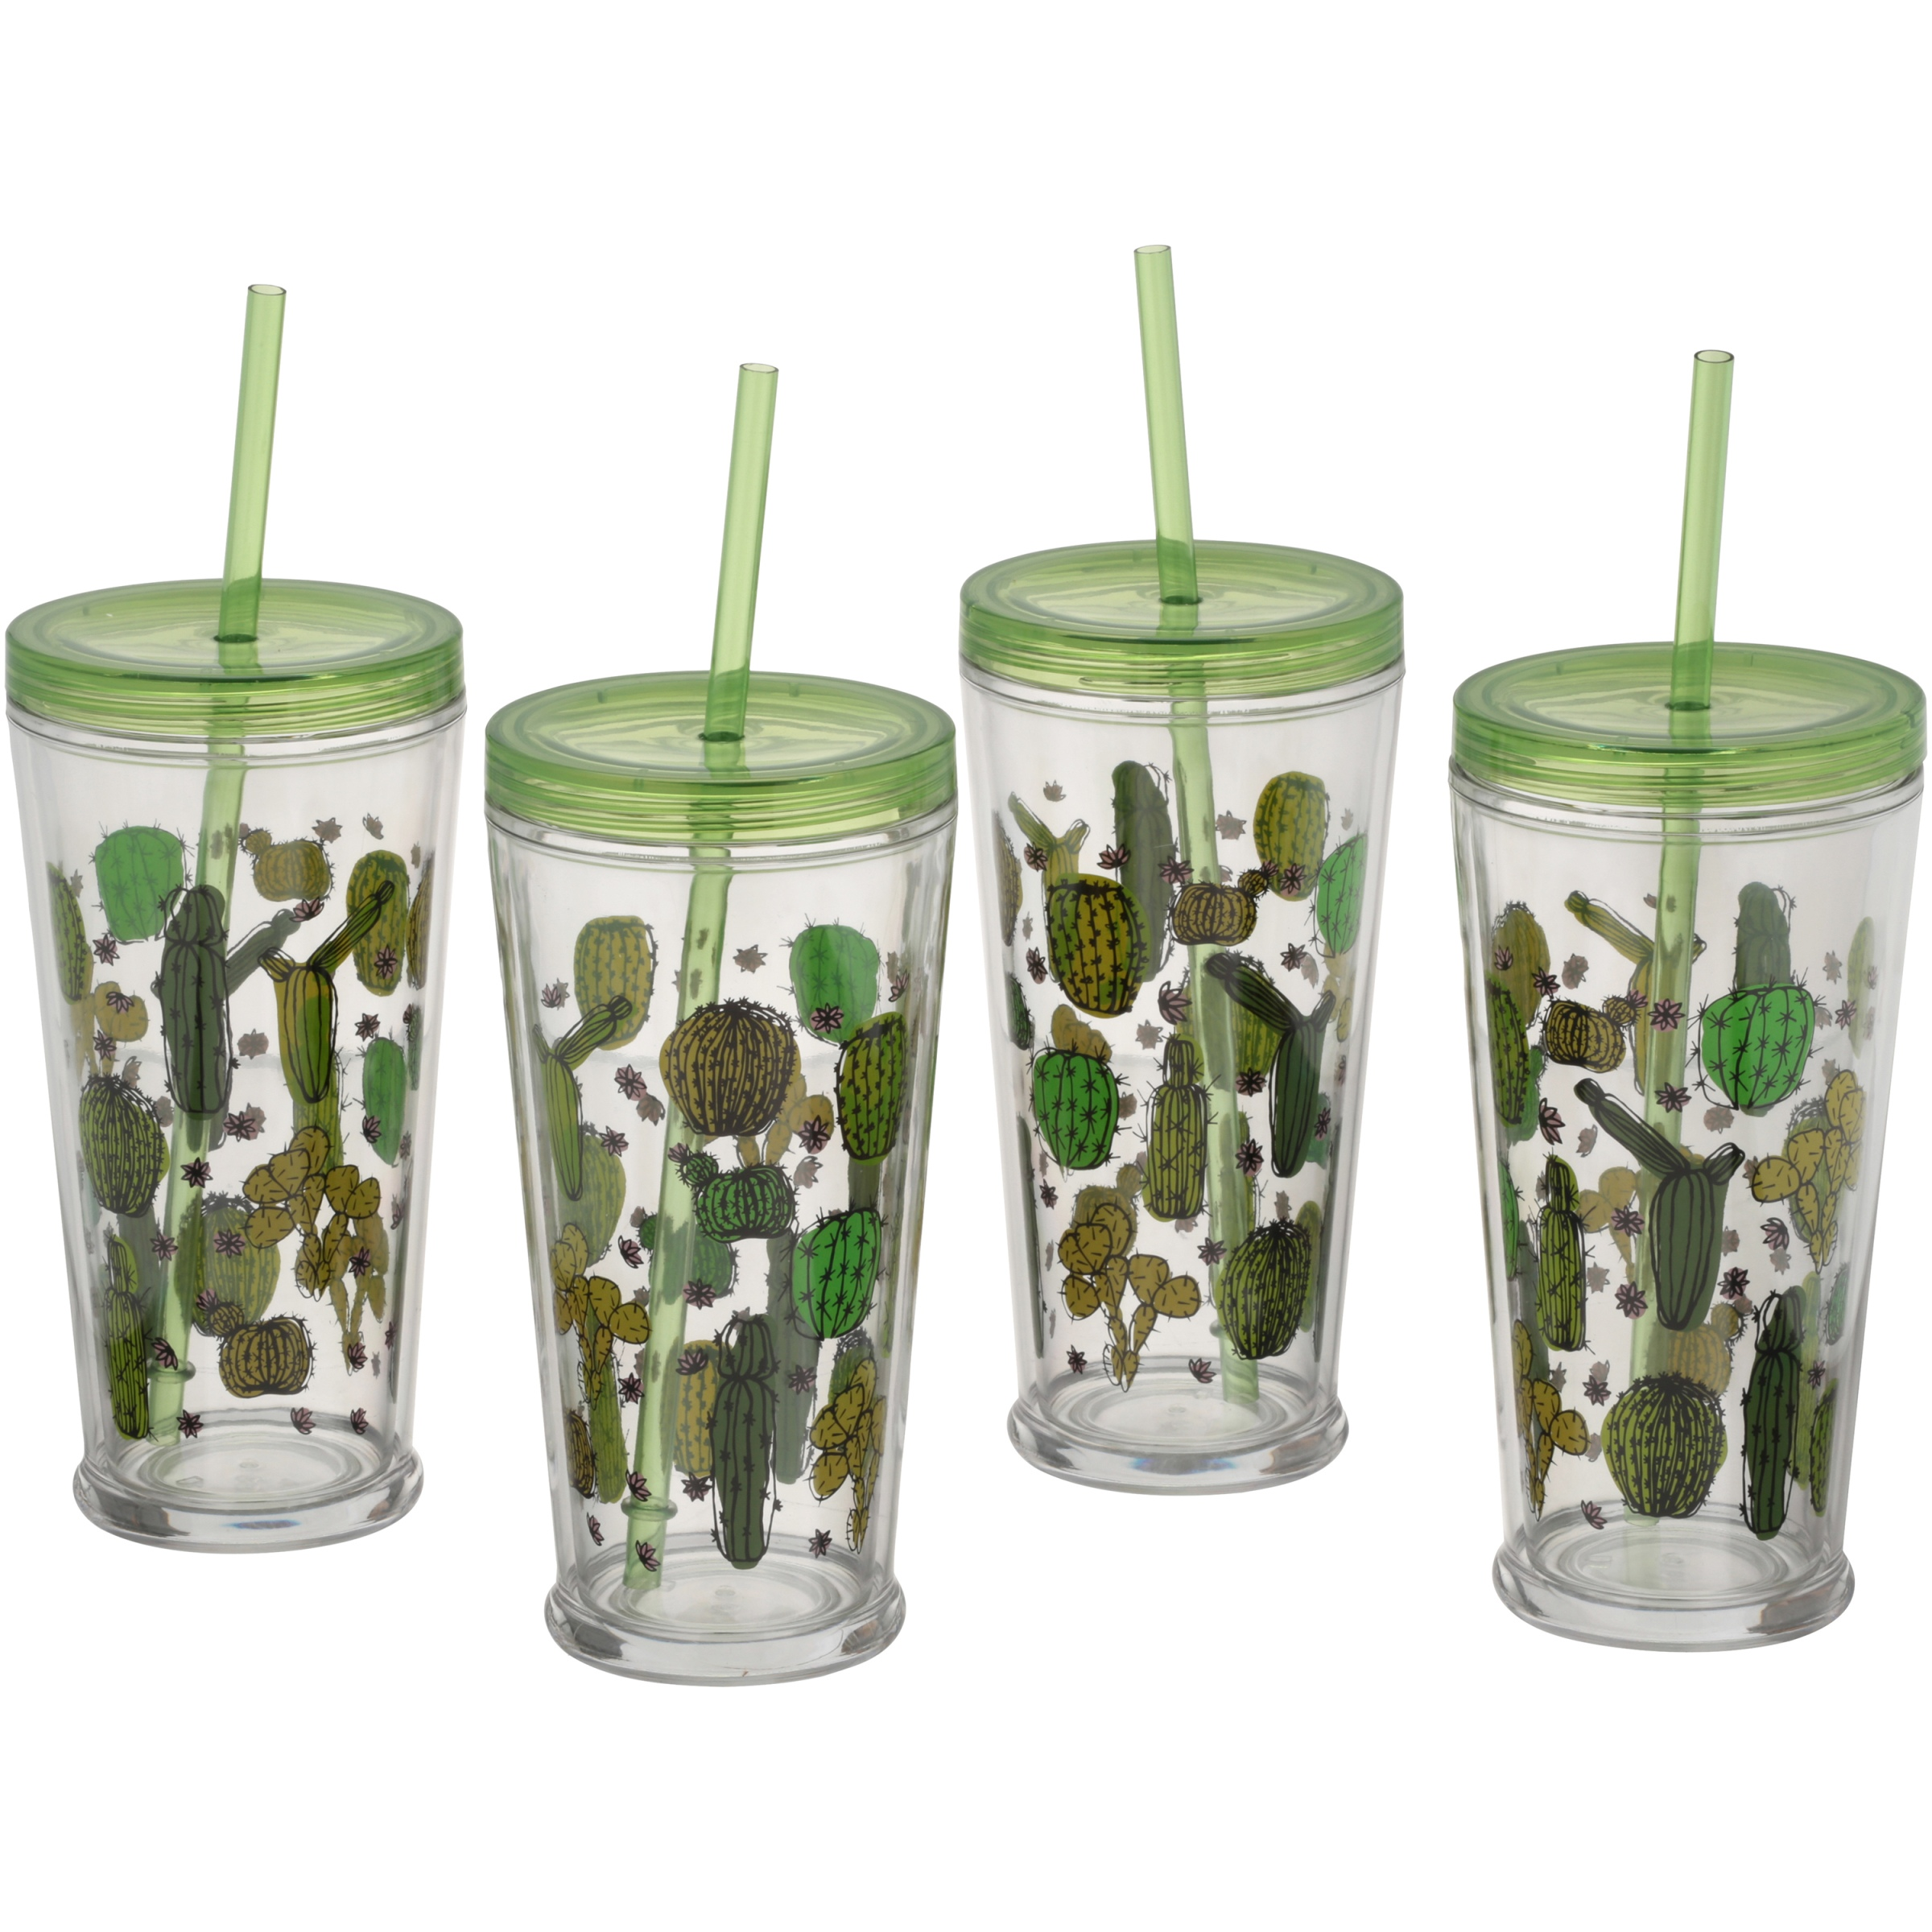 Mainstays™ Double Wall Tumbler Cactus 4 Count Set